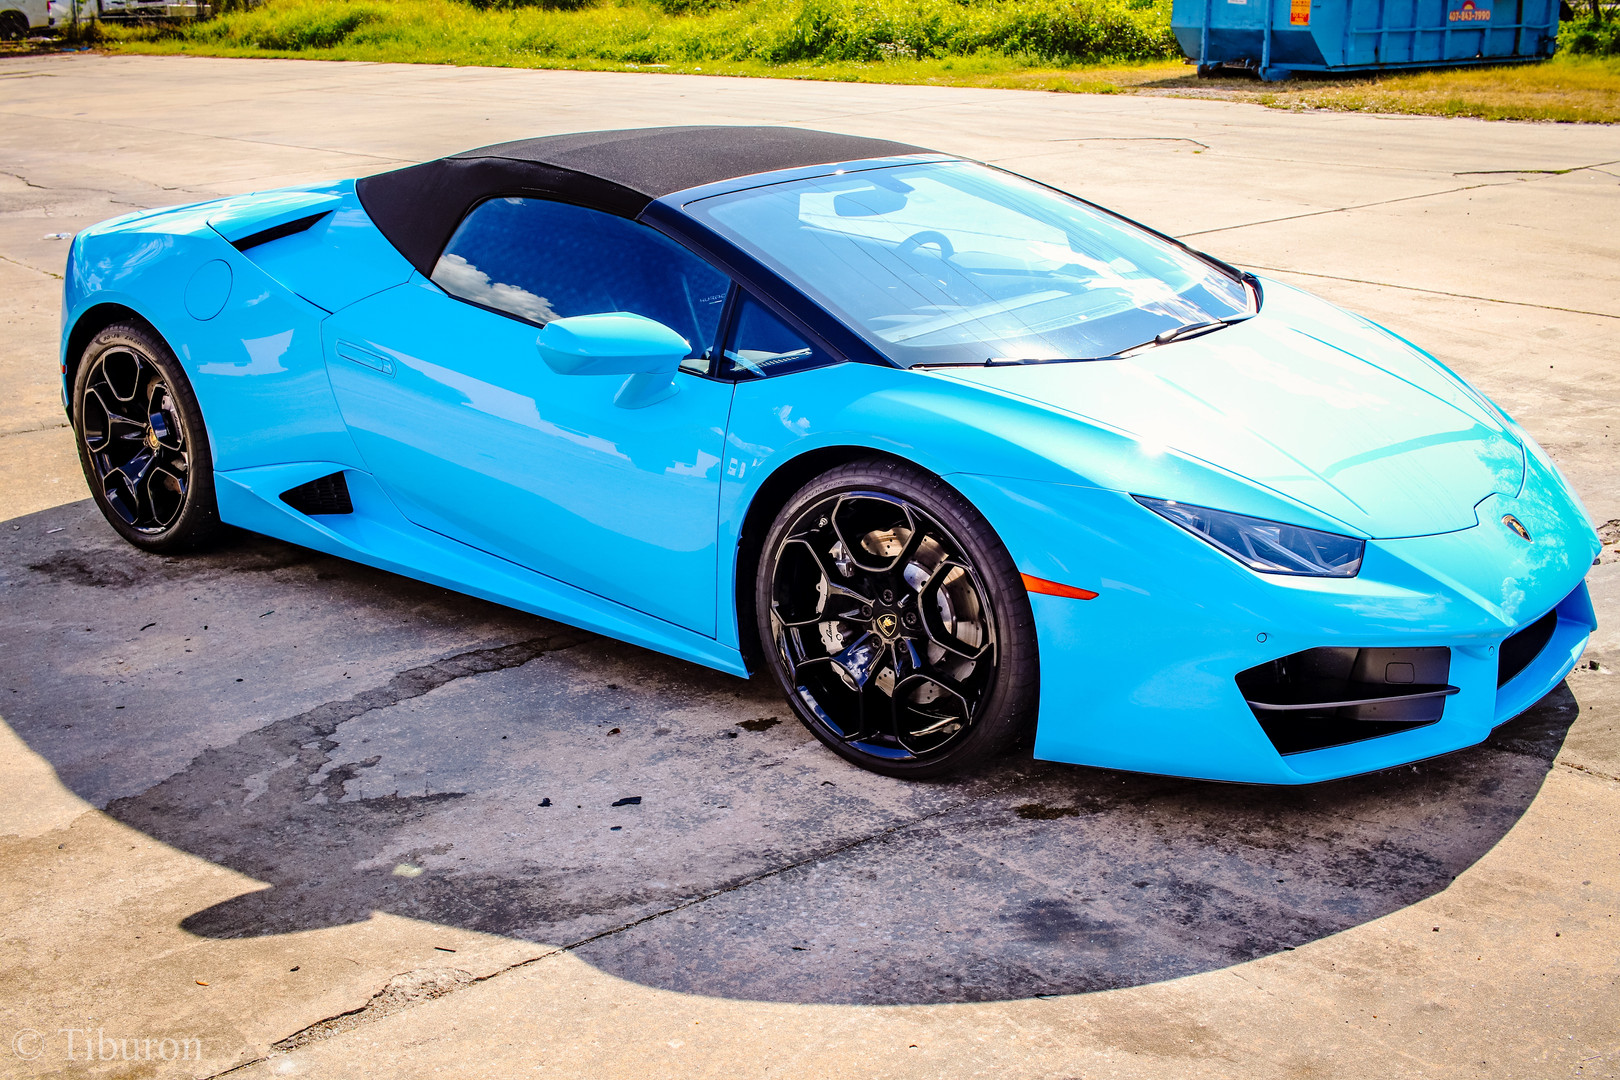 Huracan Spyder outside